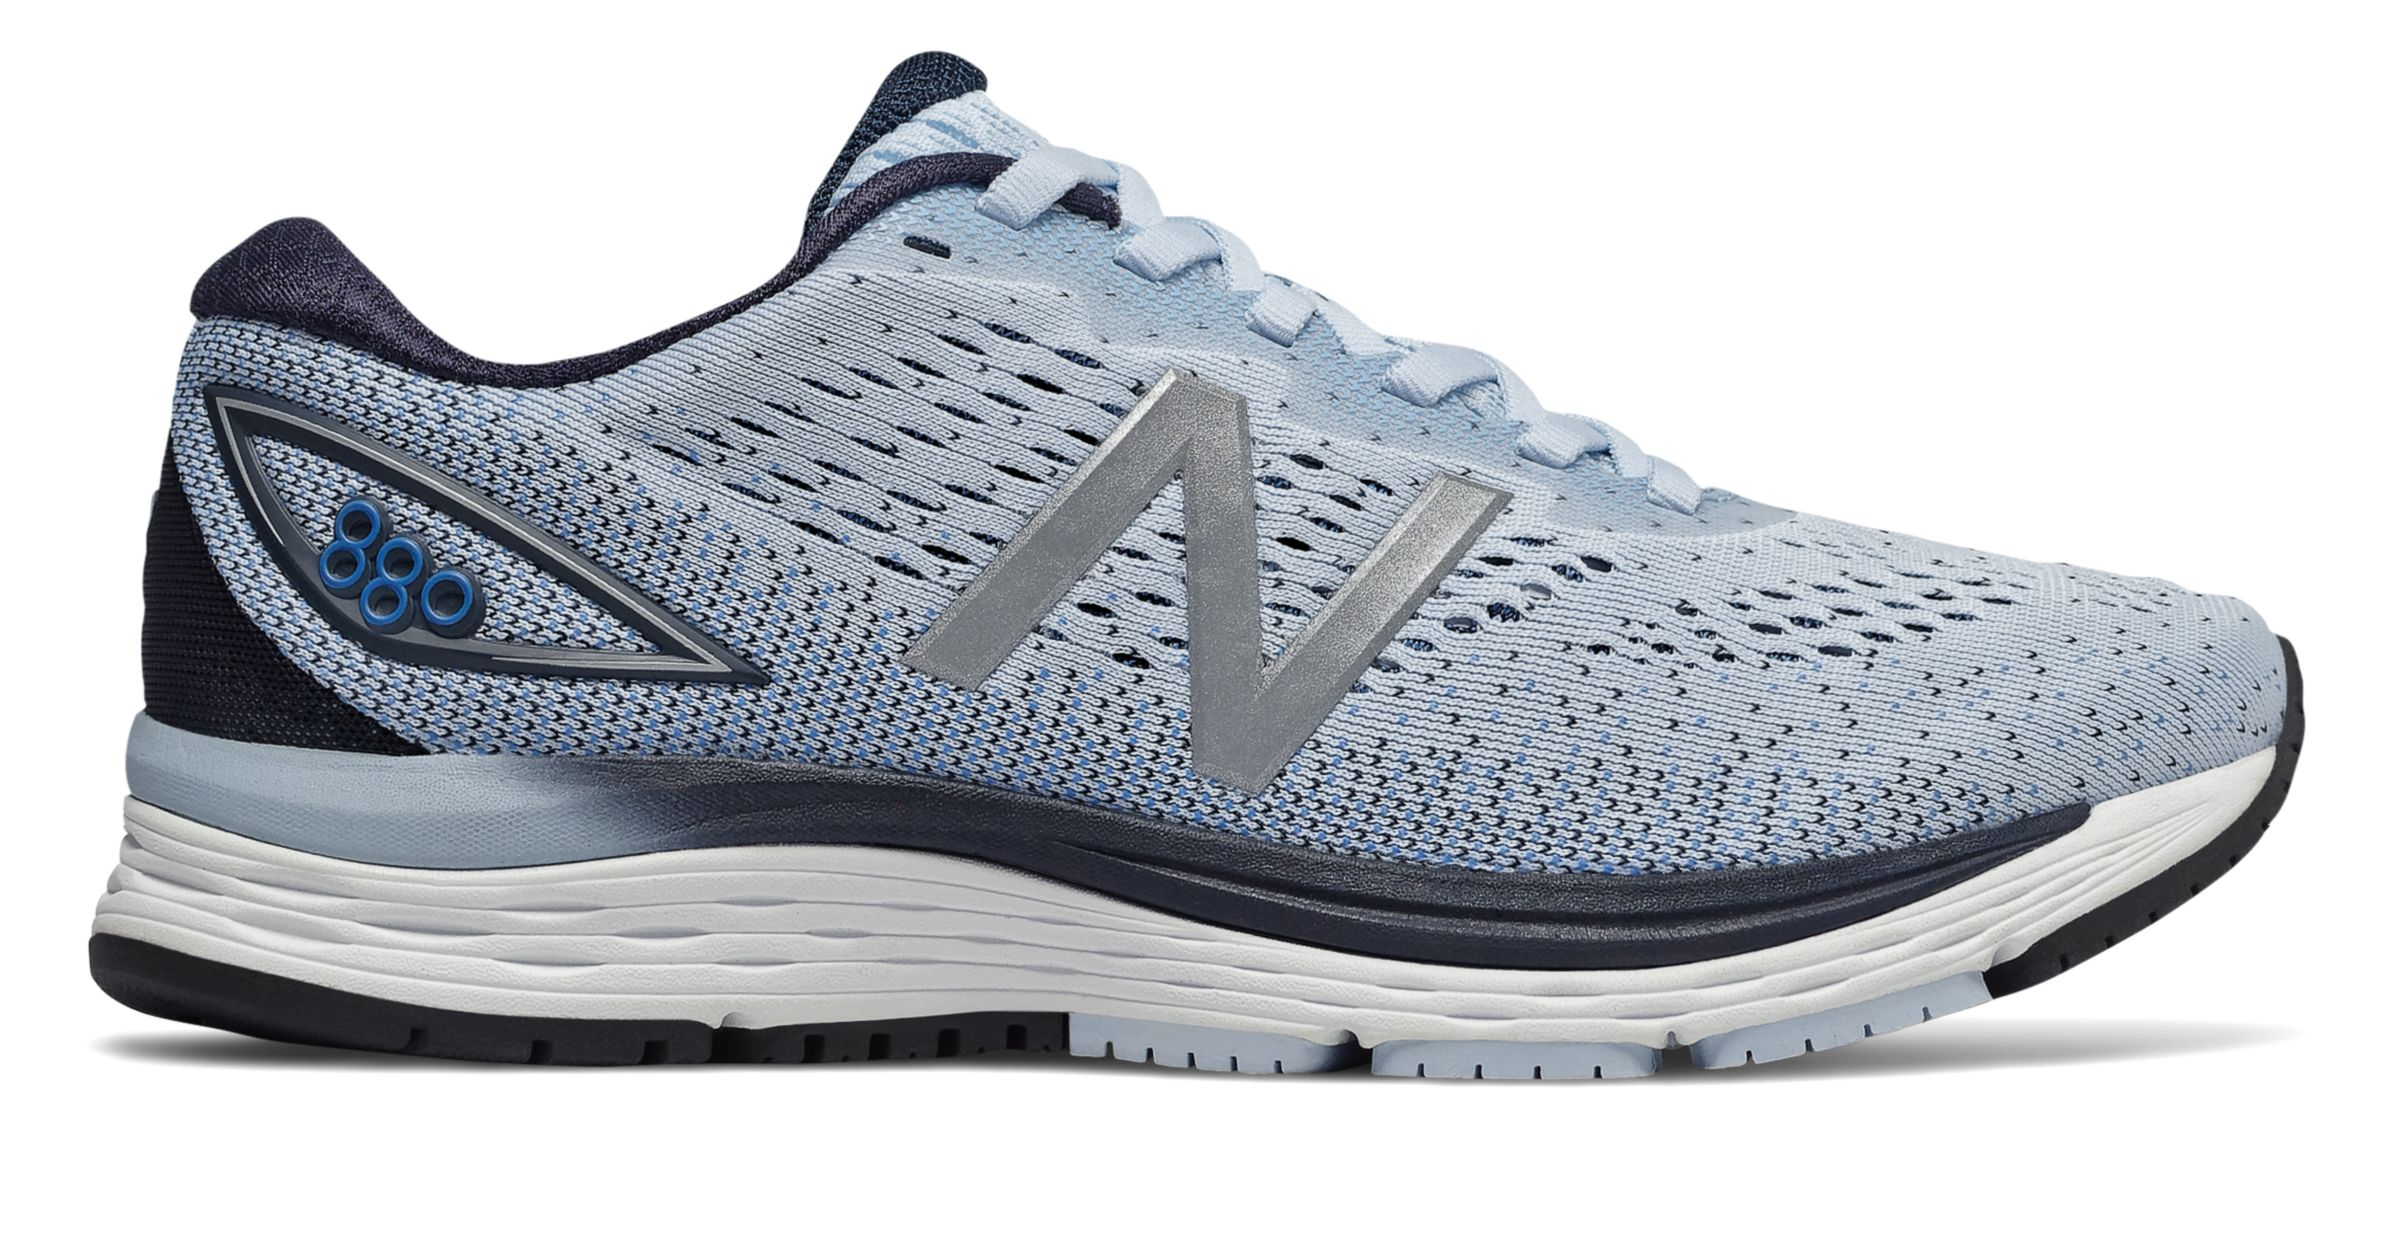 New Balance shoes built to be a daily running companion